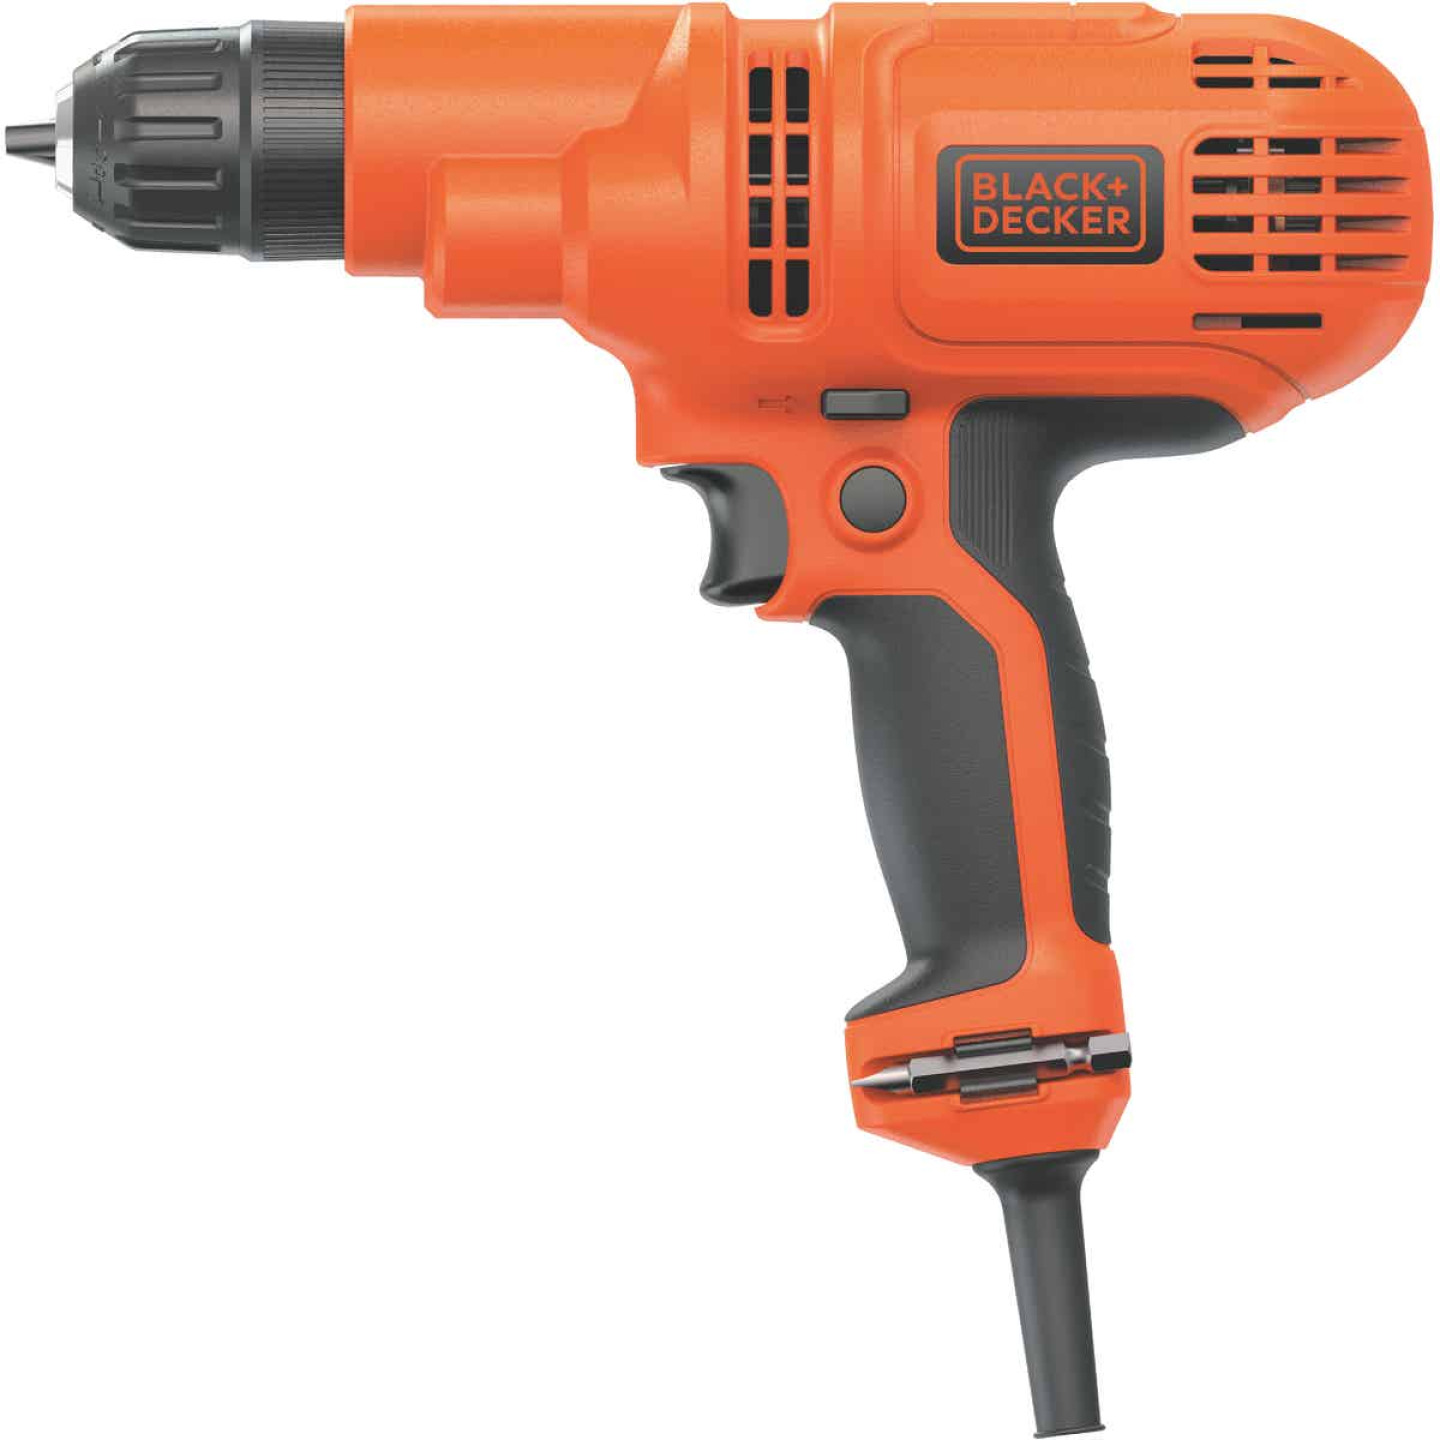 Black & Decker 3/8 In. 5.2-Amp Keyless Electric Drill/Driver Image 6